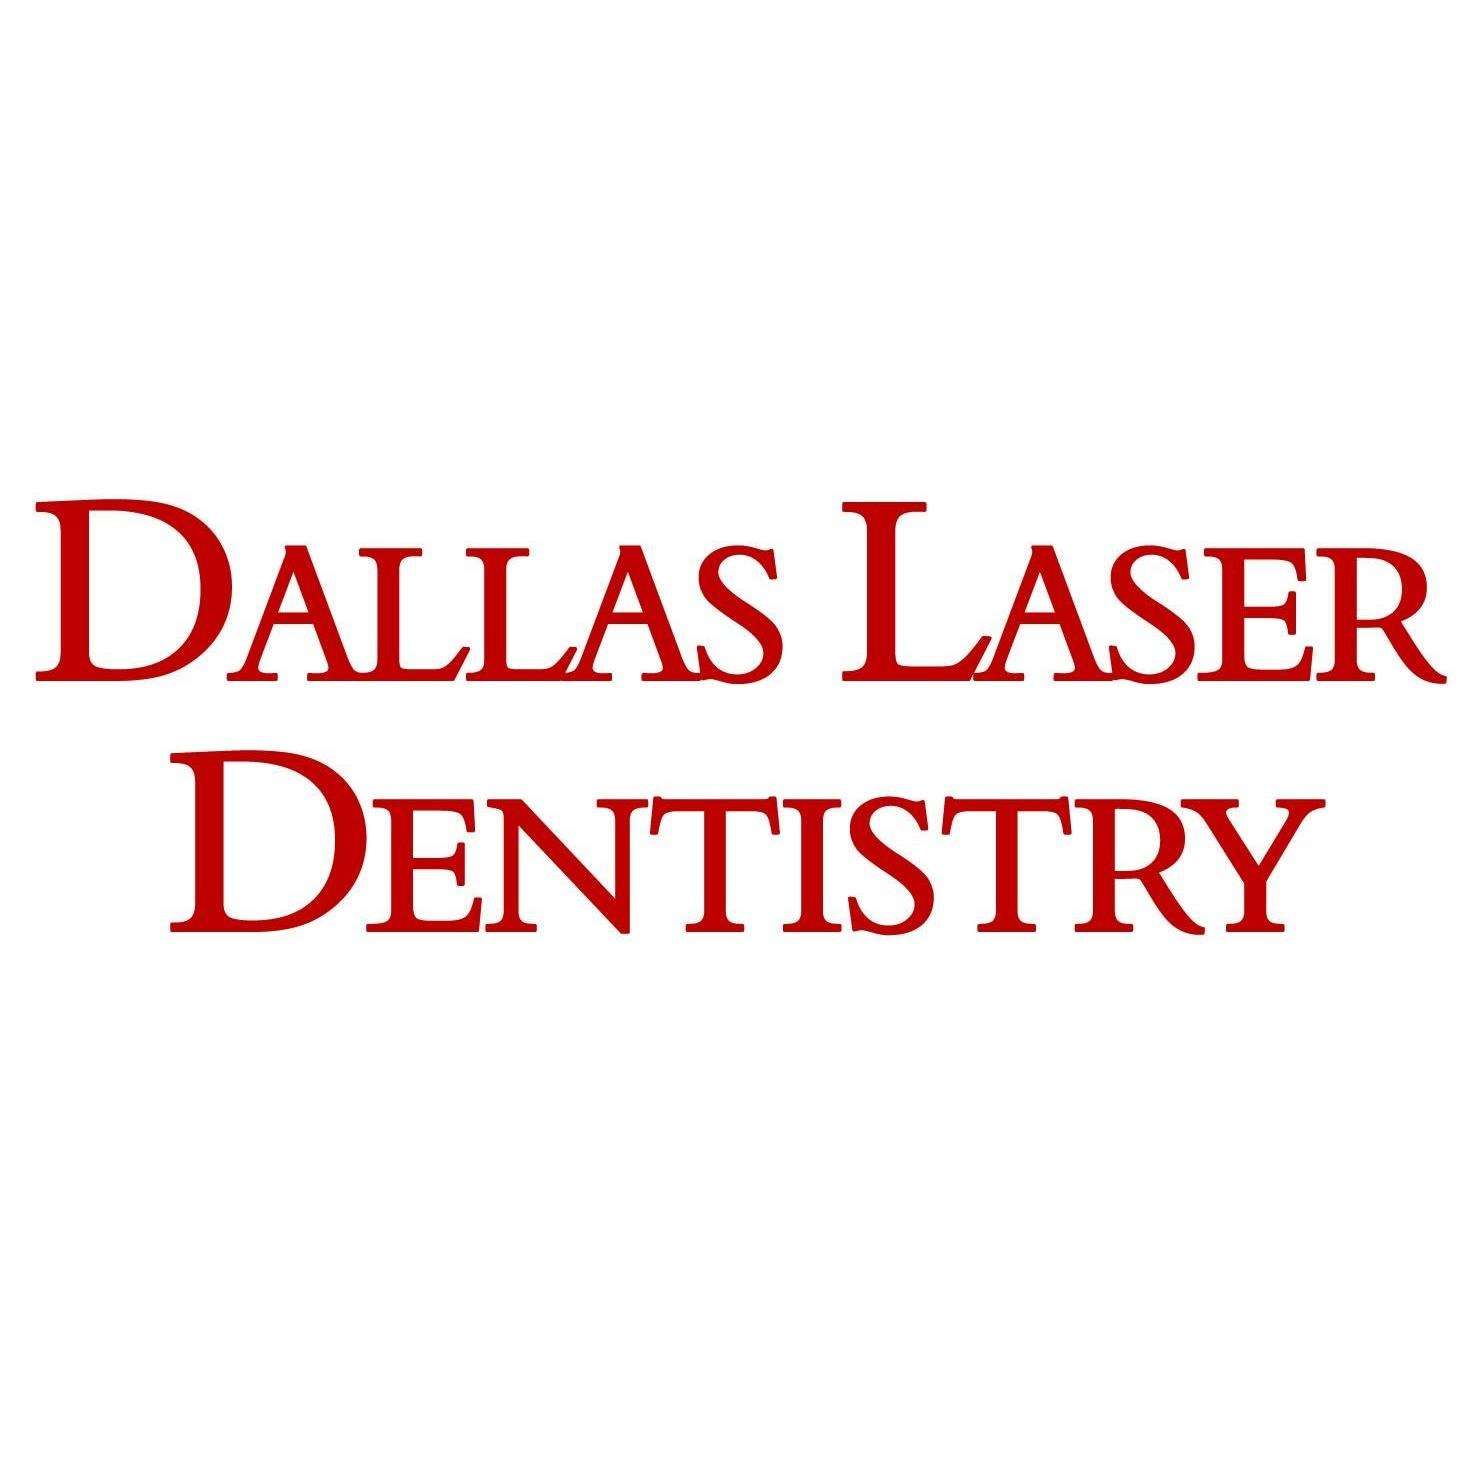 Dallas Laser Dentistry